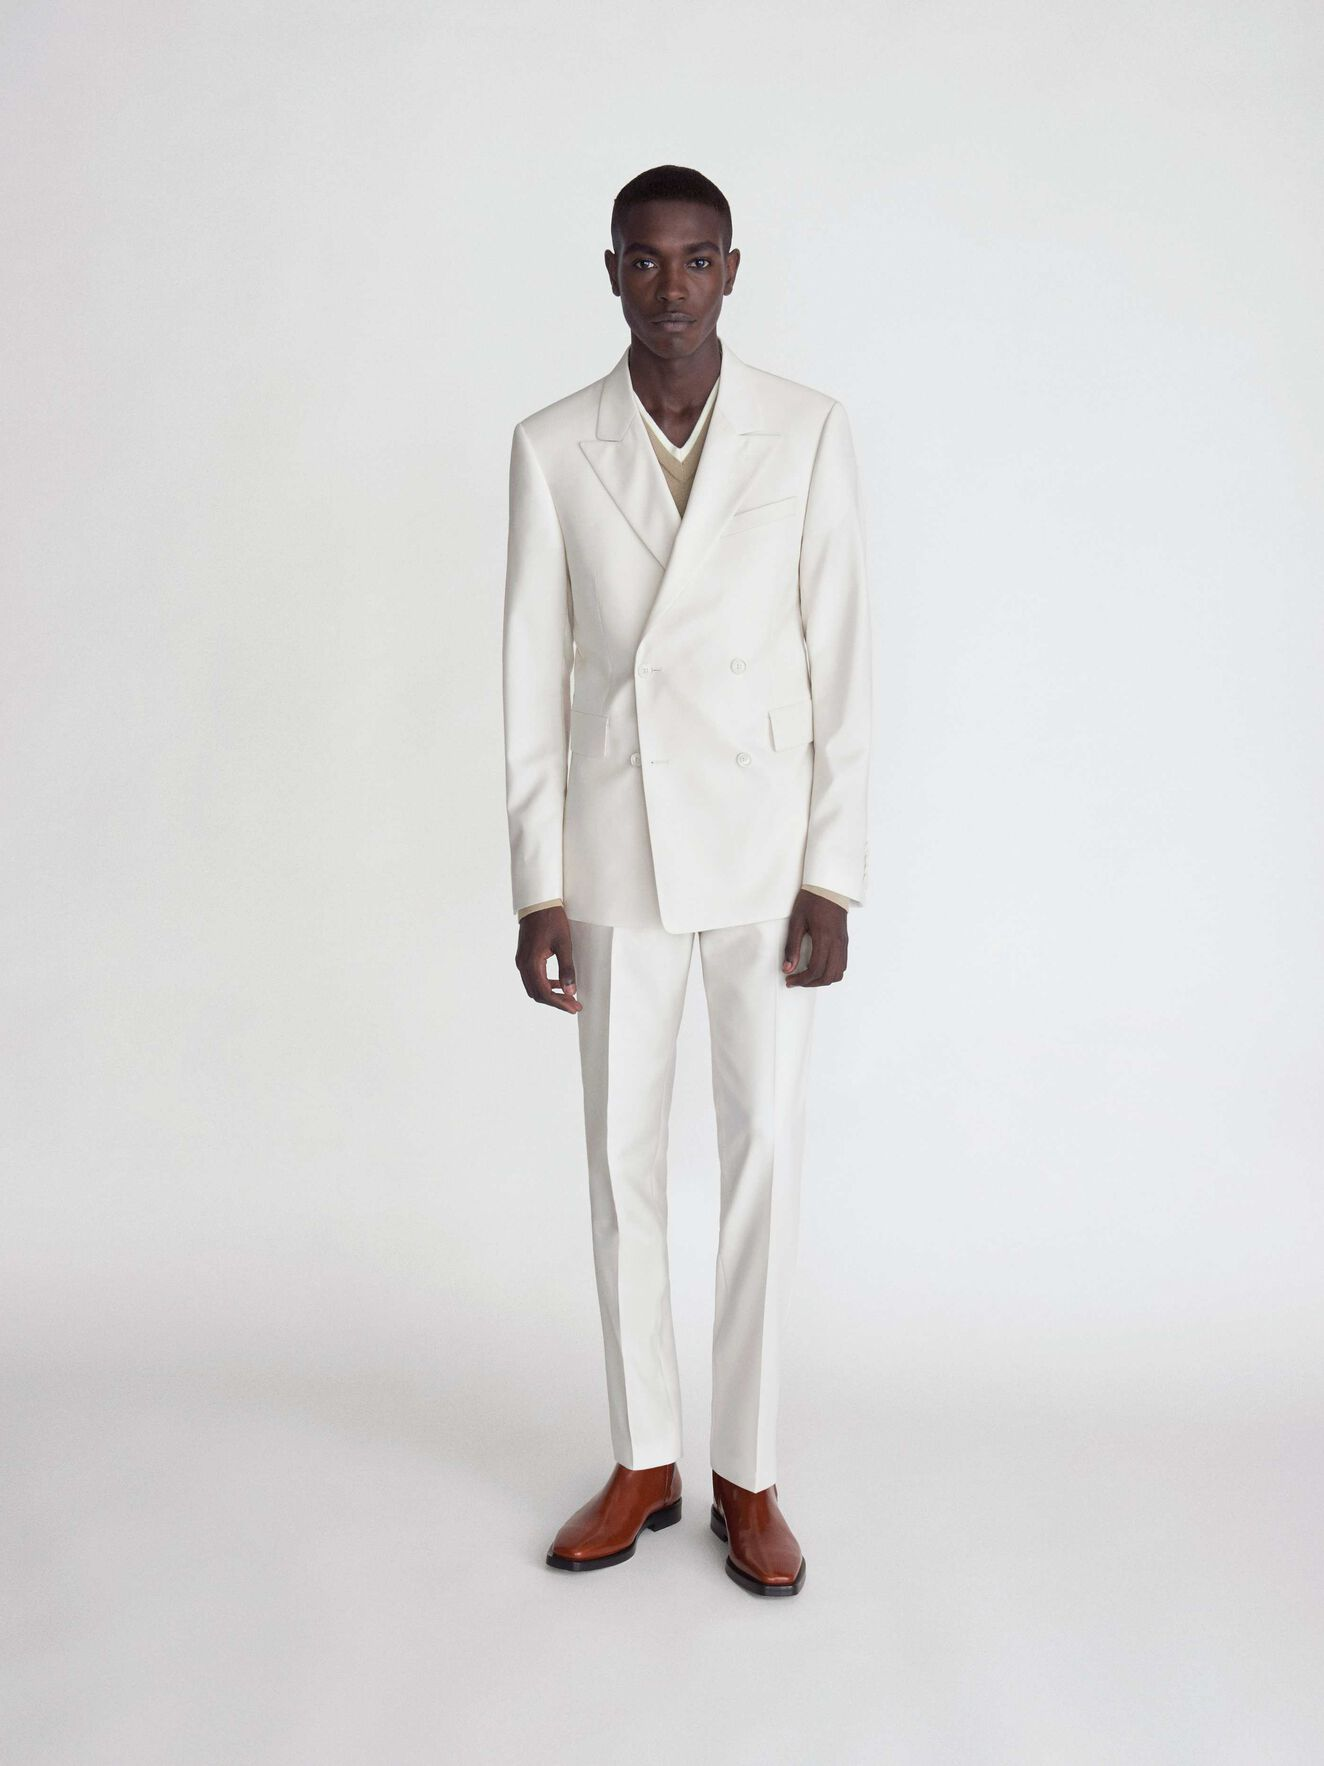 Todd Trousers in Pure white from Tiger of Sweden